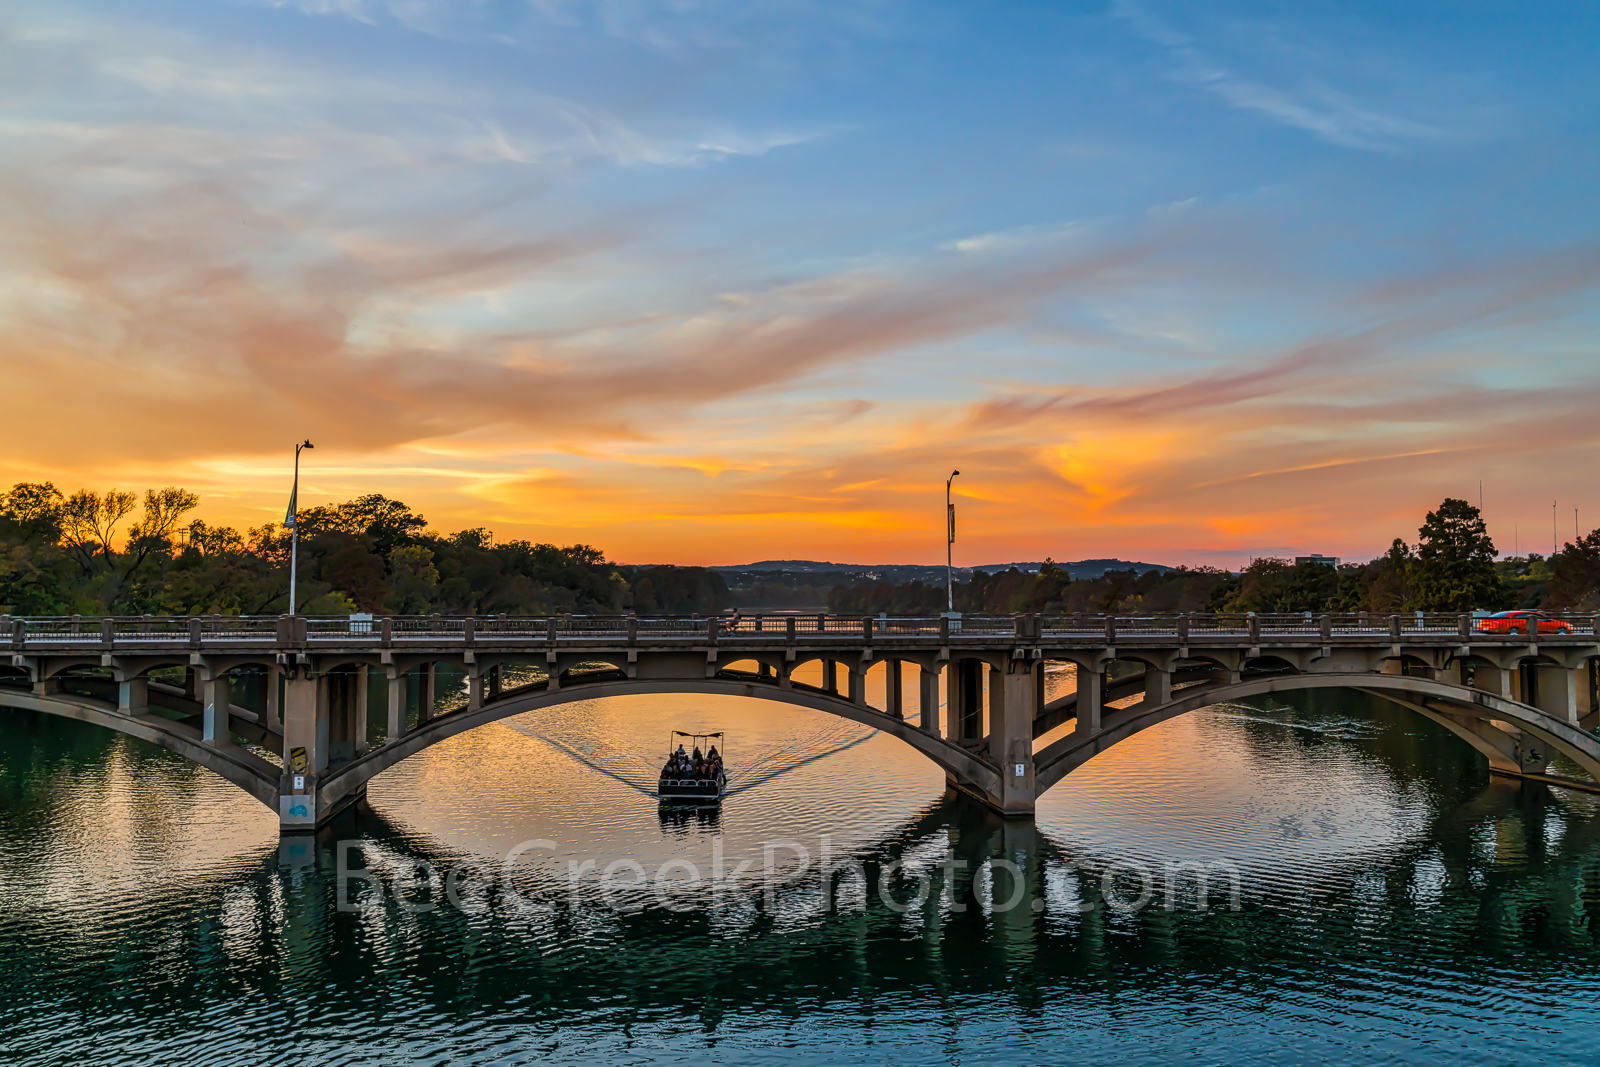 Austin Lamar Bridge, cityscape, Lady Bird Lake, sunset, sky, color, tour boat, historic arch bridge, National Registriy of Historic Places, cars, Austin Lamar Bridge at Sunset, photo